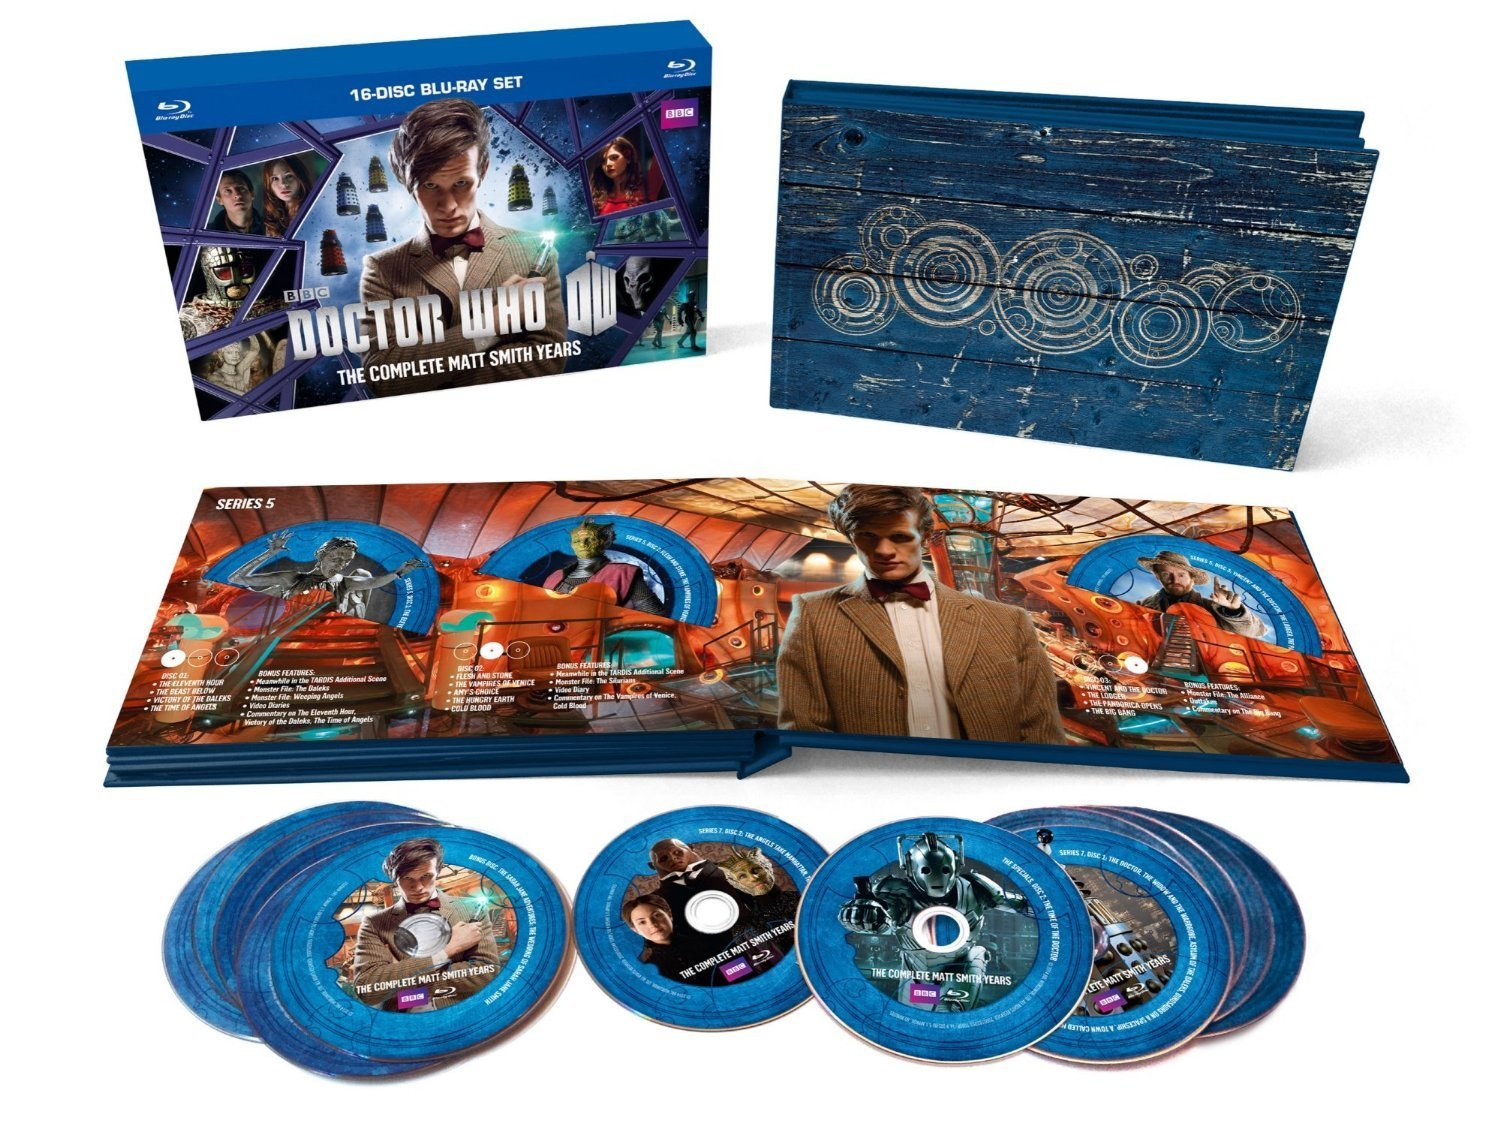 And why hasn't this set been released in the UK?!